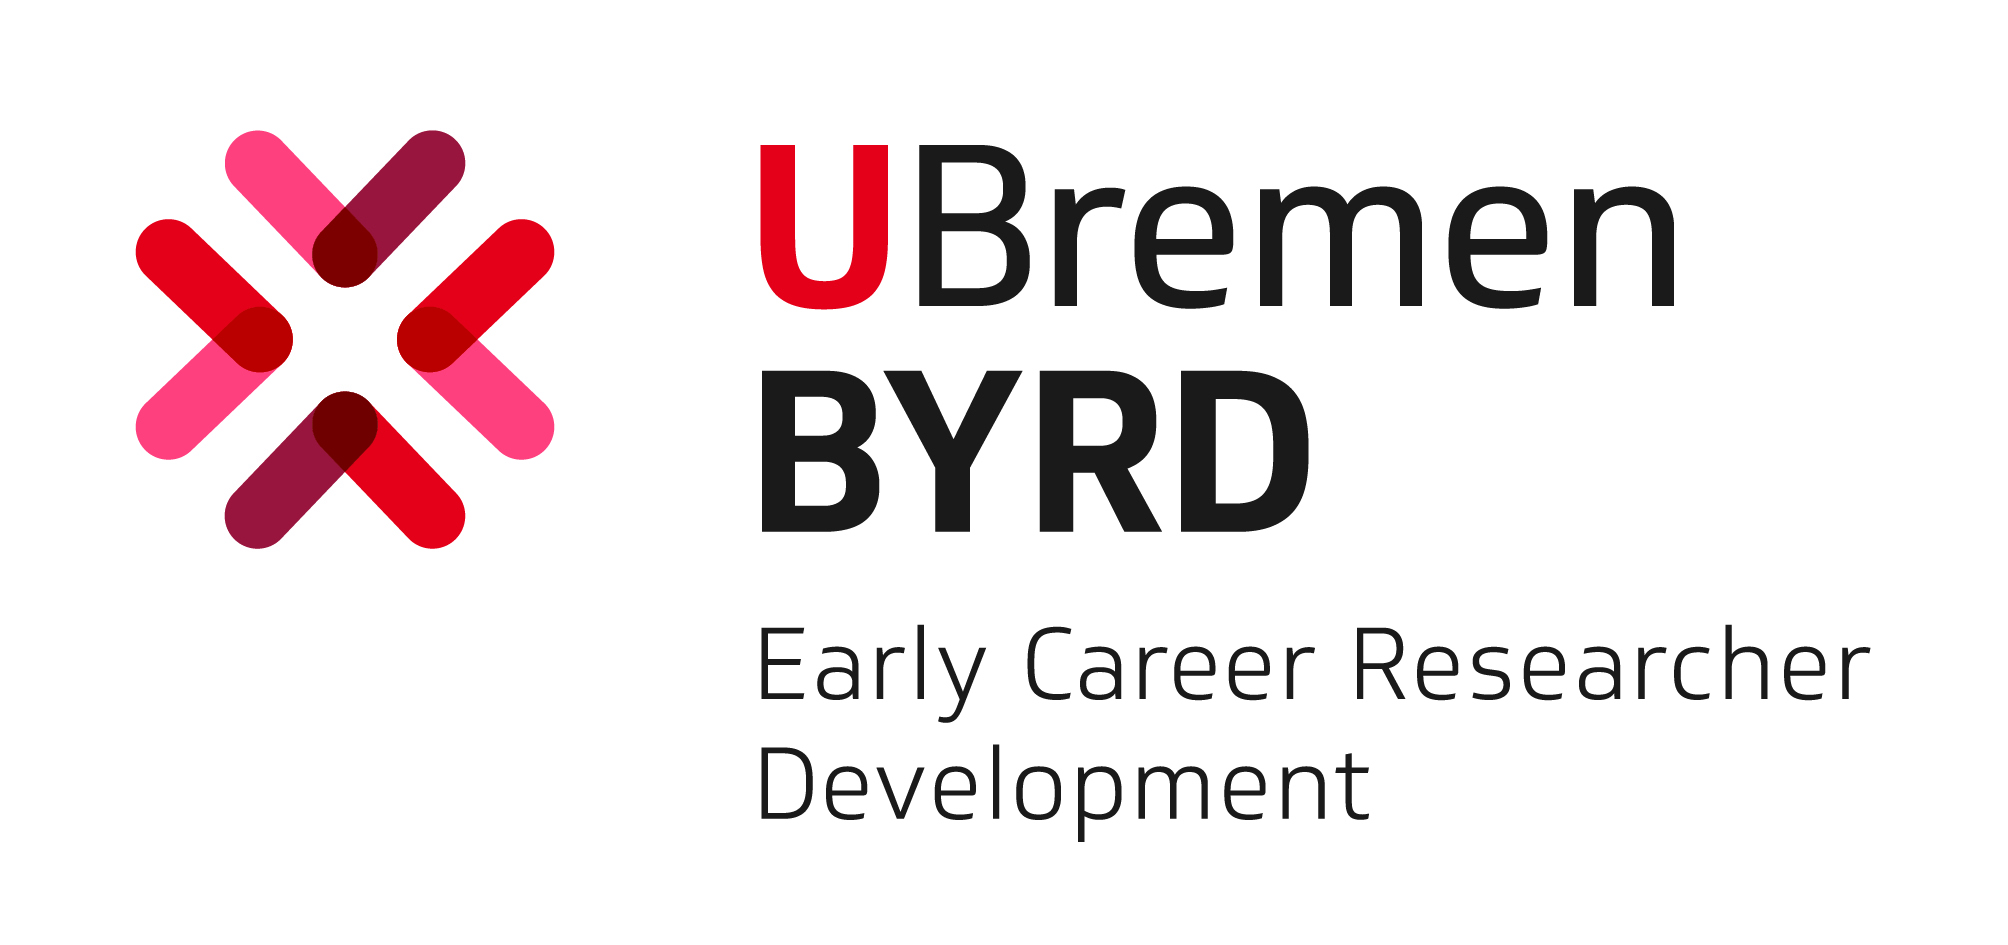 Logo Bremen Early Career Researcher Development